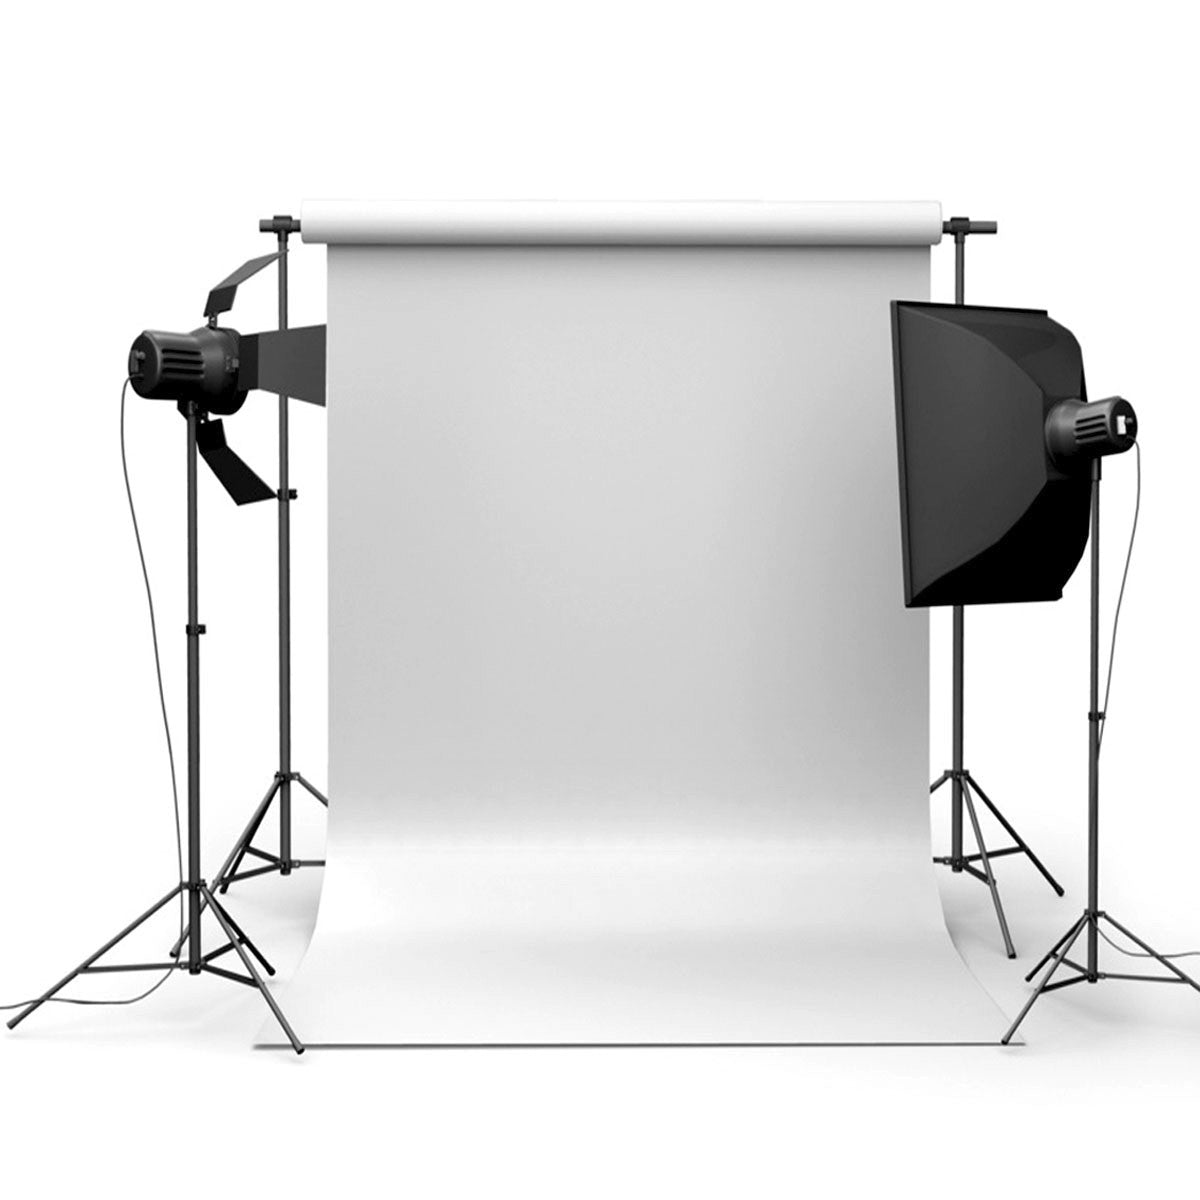 Backdrop 90x150cm 3x5ft Pure White Vinyl Studio Photography Backdrop Props Background